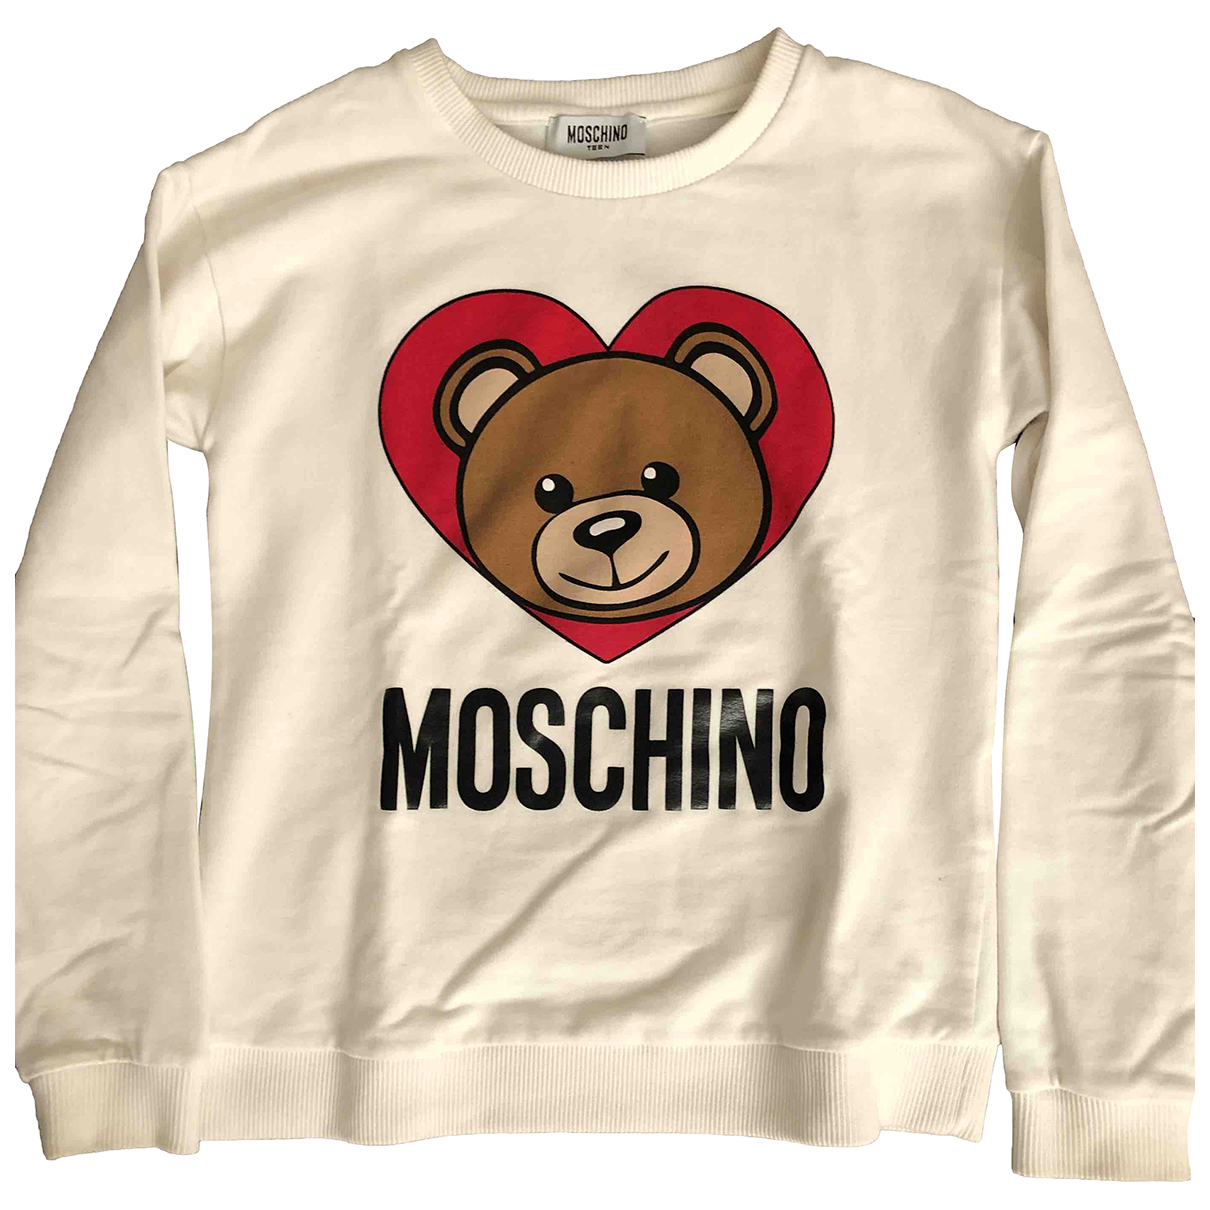 Moschino N White Cotton Knitwear for Kids 10 years - up to 142cm FR